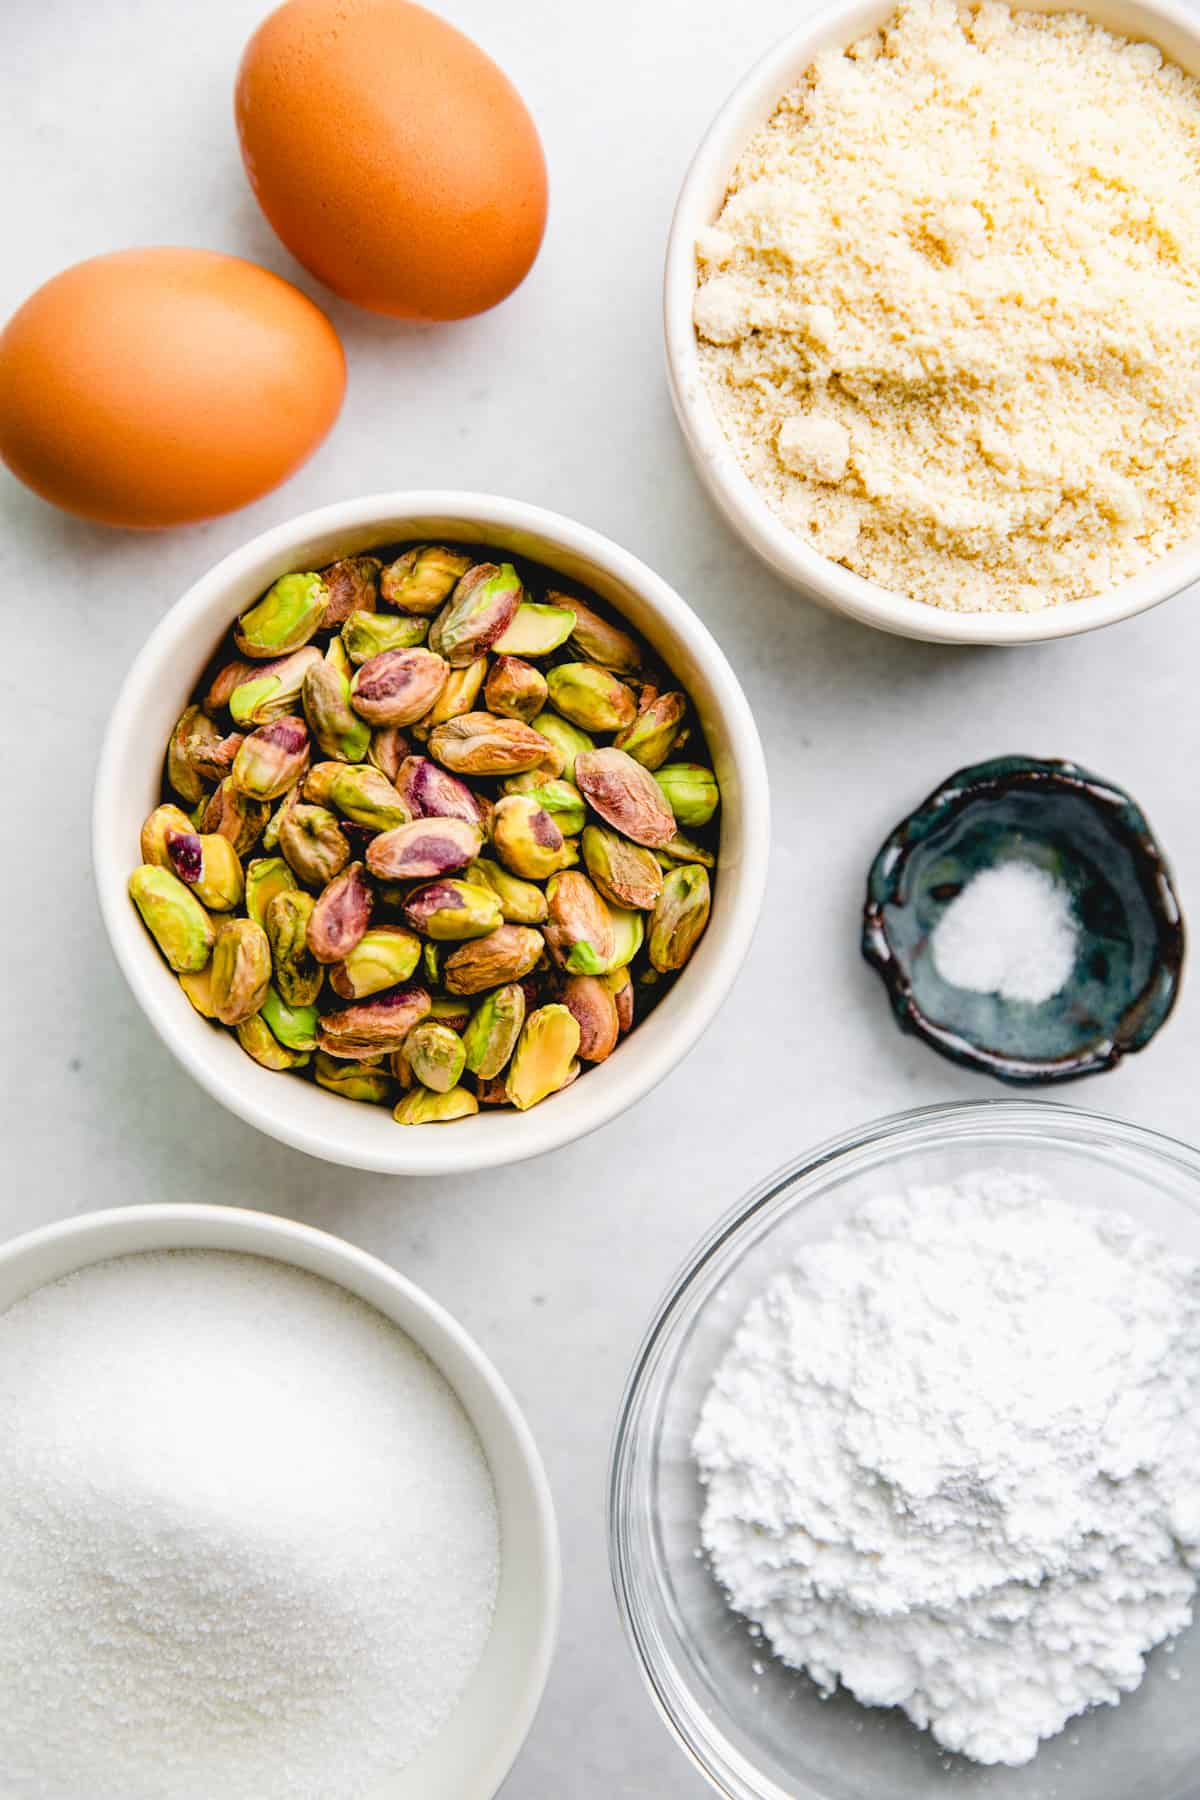 Ingredients for Pistachio Cookies in separate bowls.